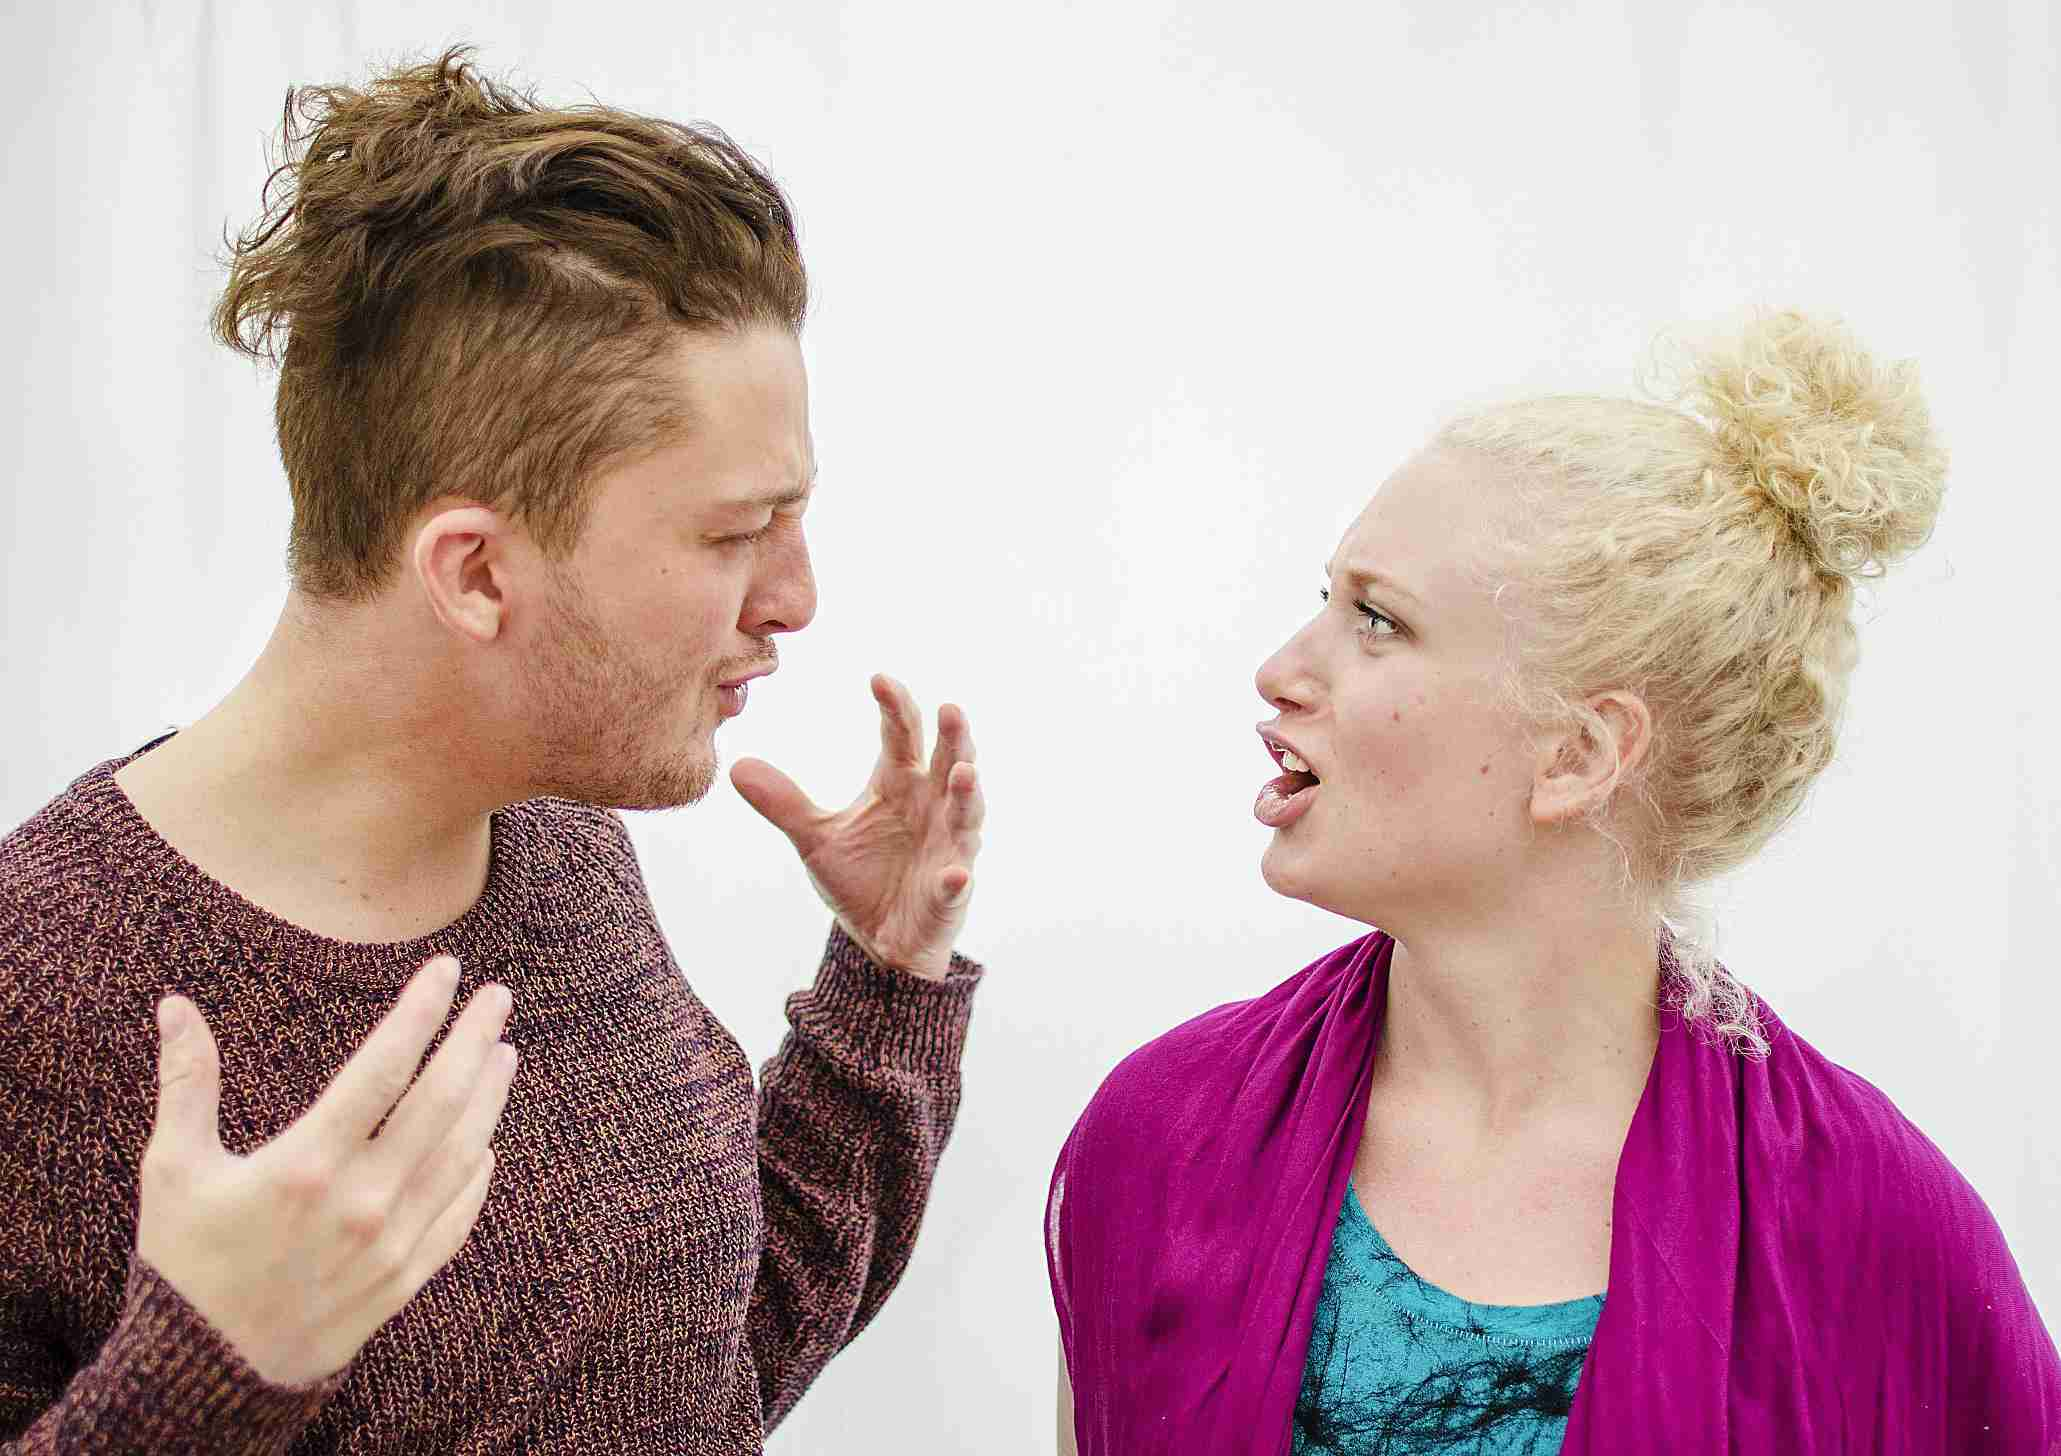 Man and Woman Arguing